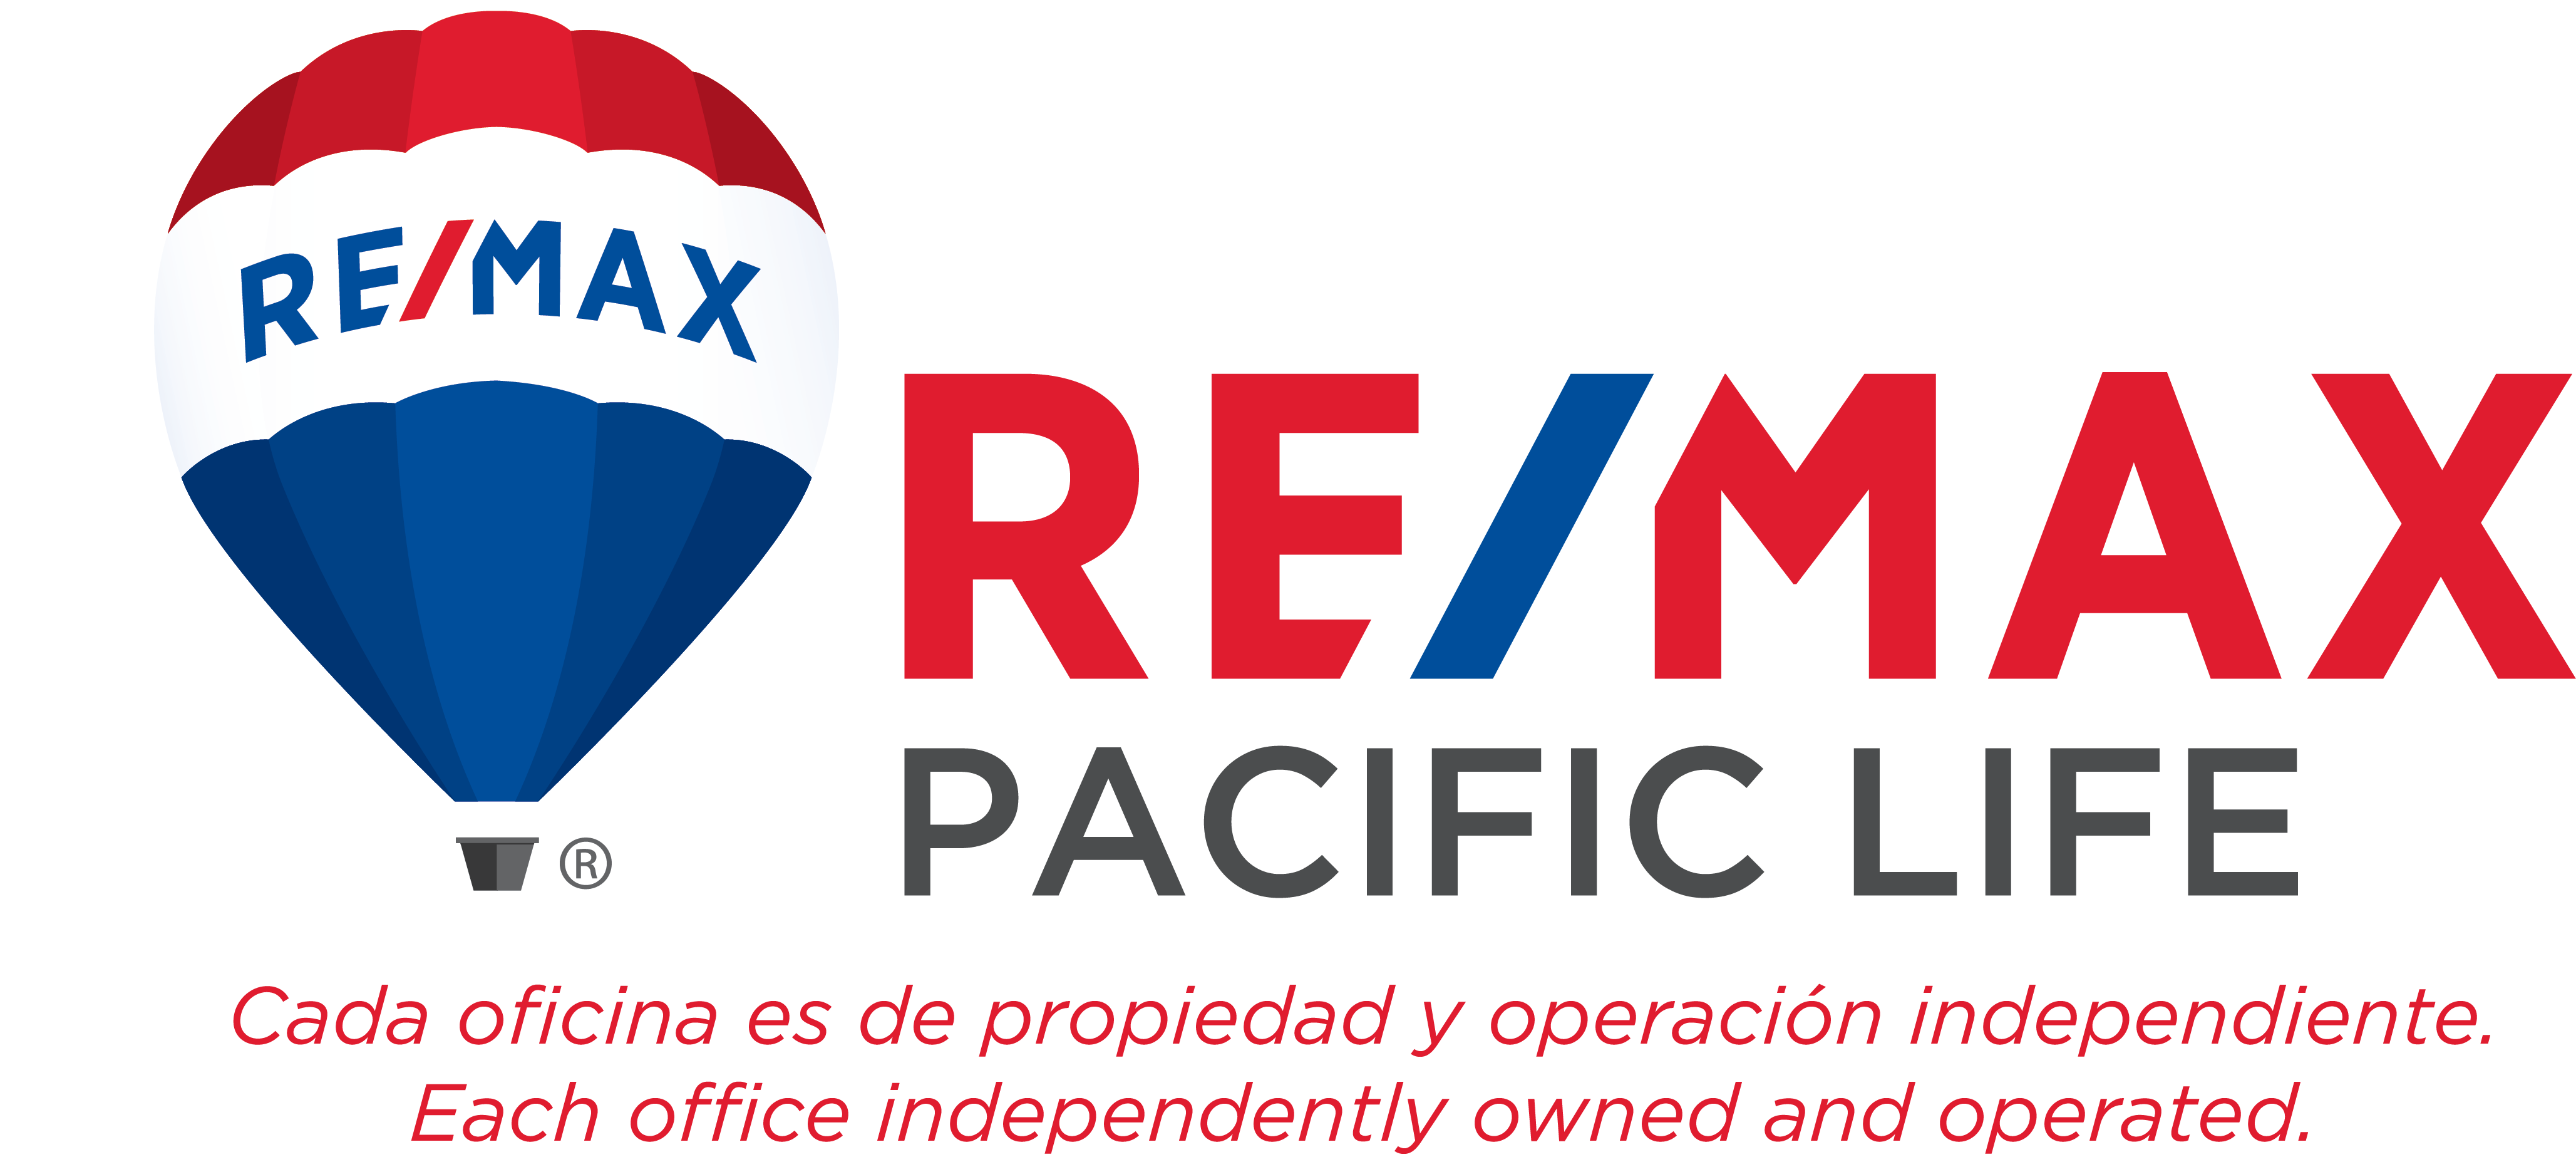 RE/MAX Pacific Life